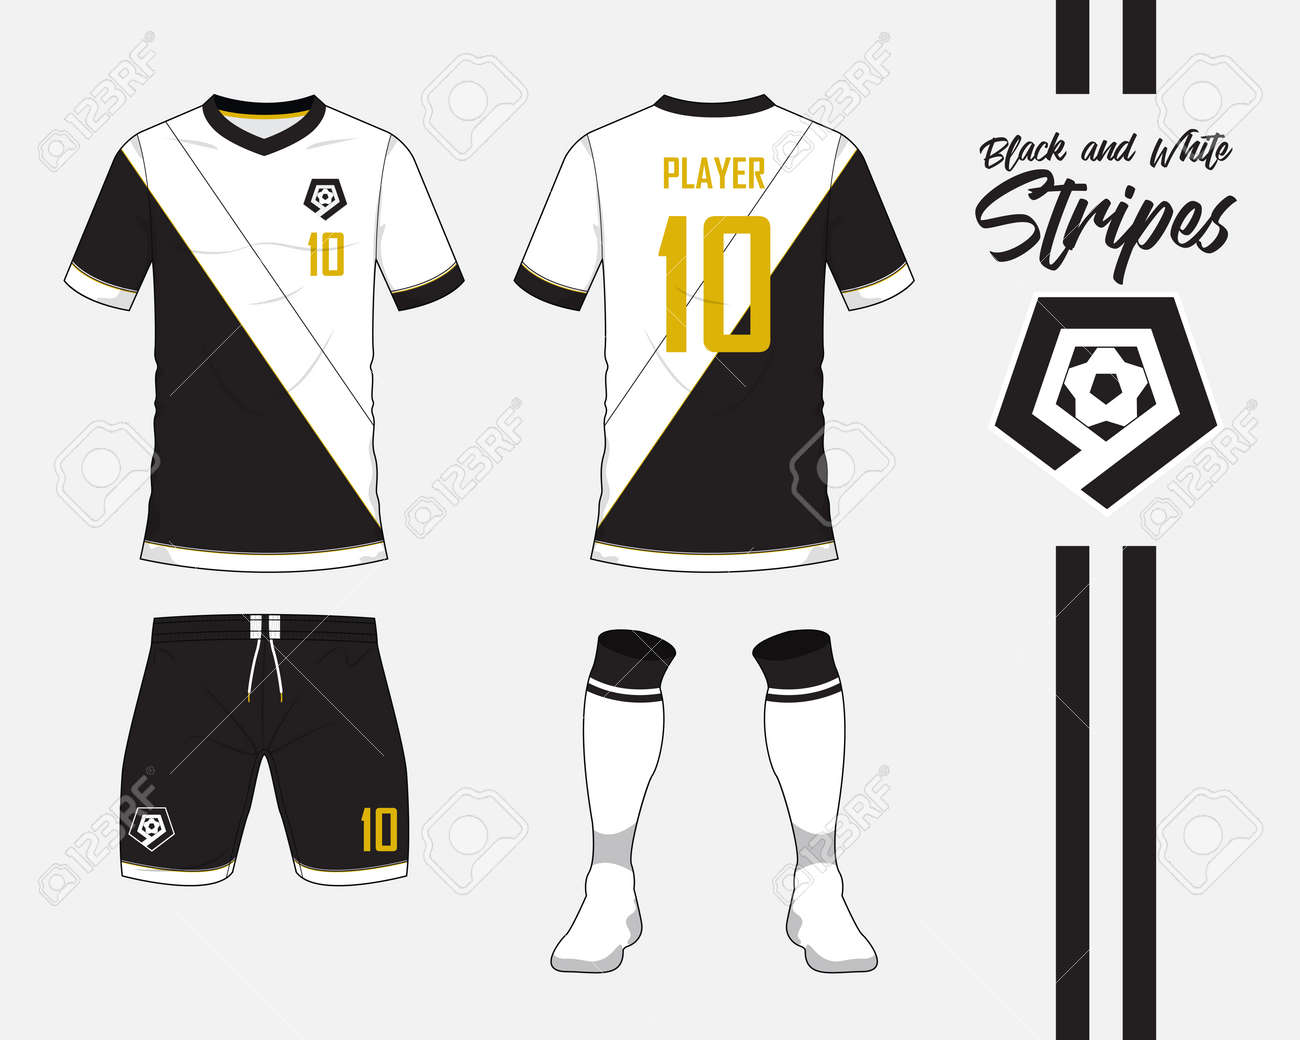 Soccer Jersey Or Football Kit Collection In Black And White Stripes Royalty Free Cliparts Vectors And Stock Illustration Image 83922360